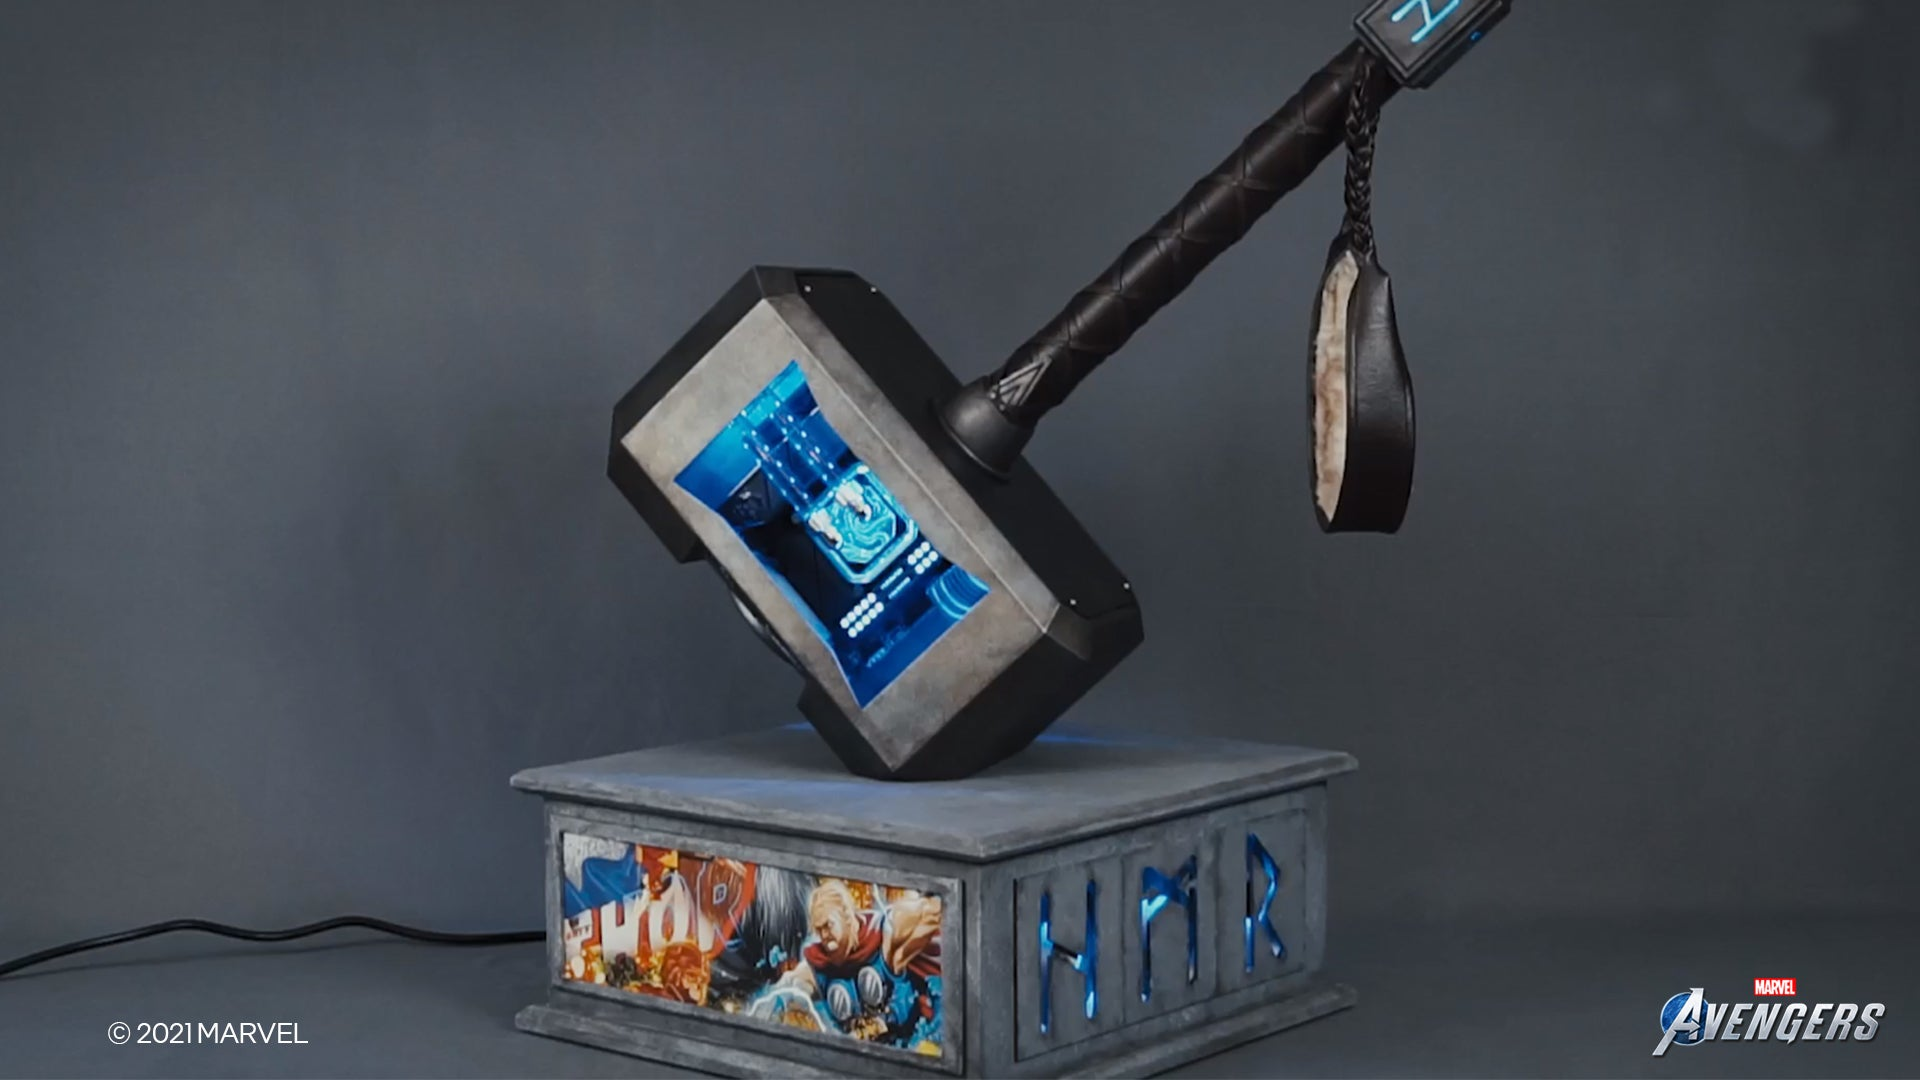 A PC computer that looks like Thor's hammer Mjolnir resting atop a stone slab.